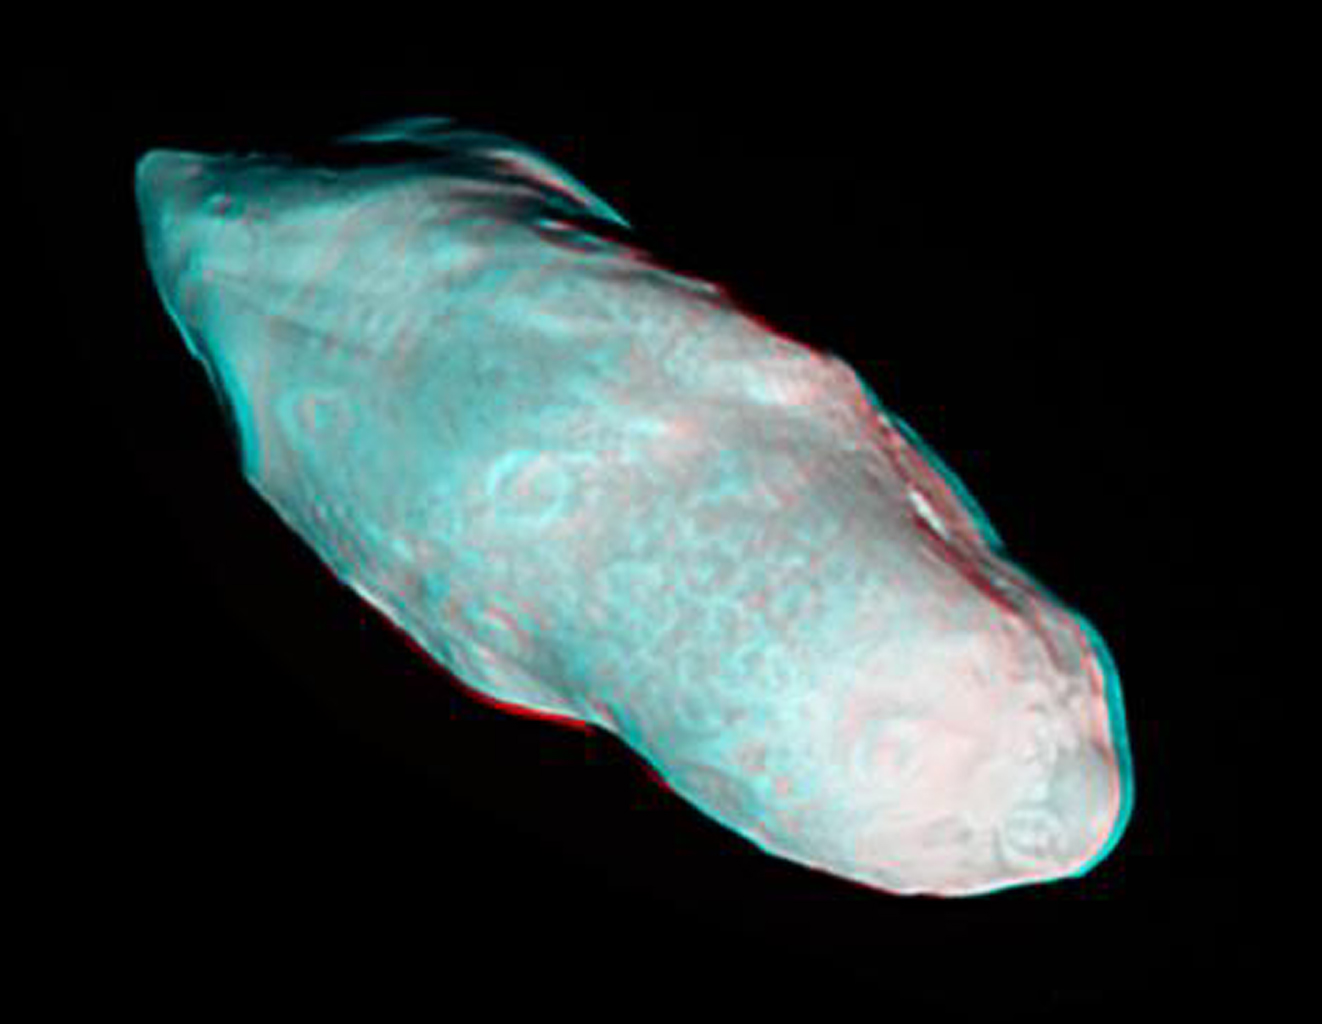 Saturn's potato-shaped moon Prometheus is rendered in three dimensions in this close-up from NASA's Cassini spacecraft. You will need 3-D glasses to view this image.